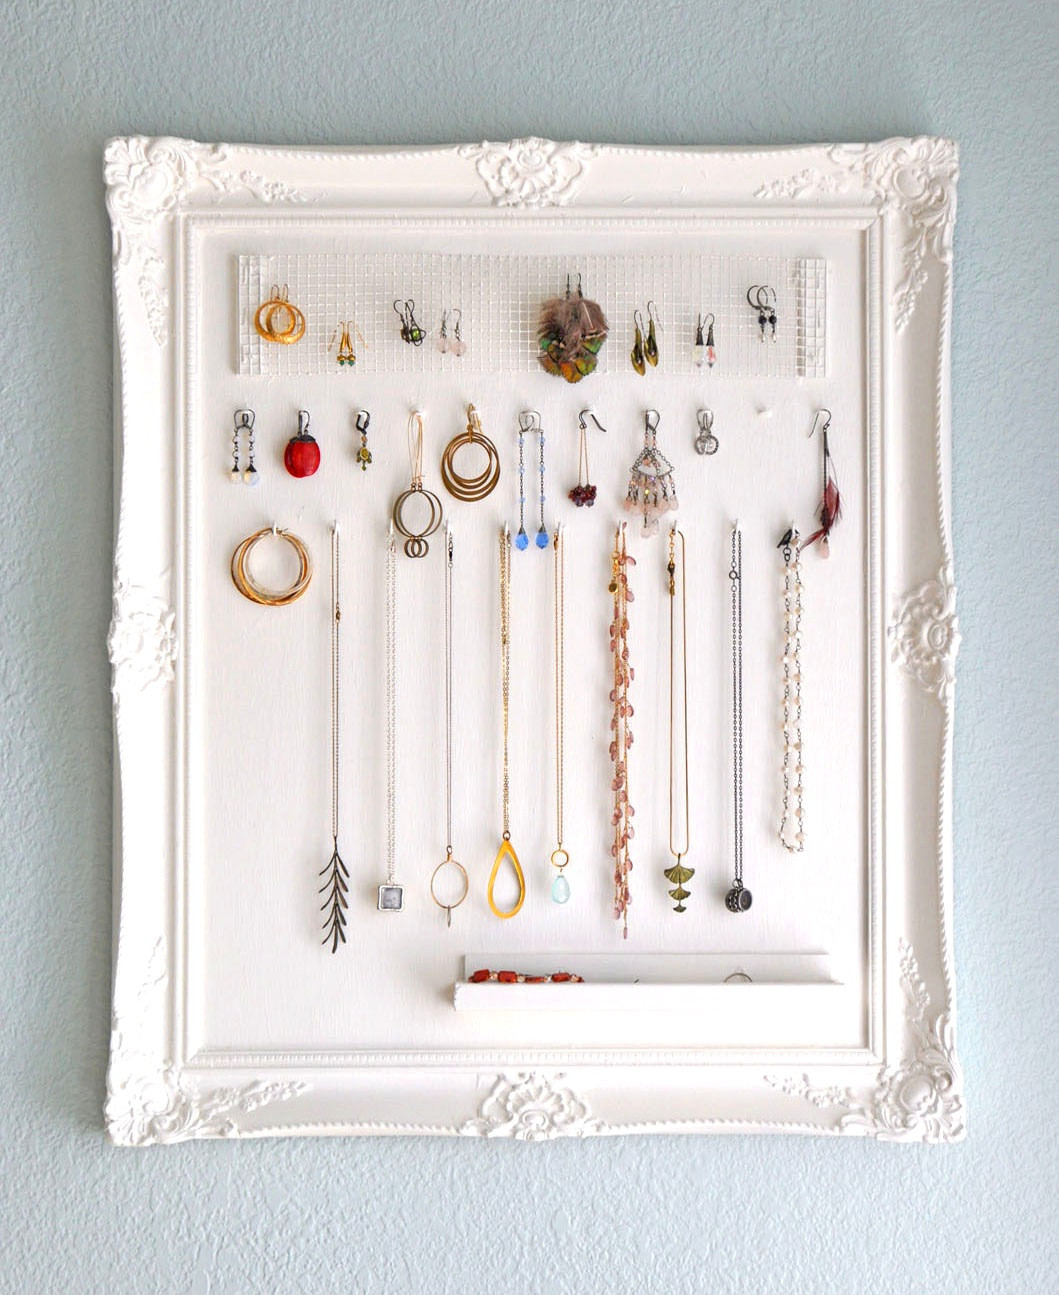 Best ideas about DIY Jewelry Rack . Save or Pin 23 Jewelry Display DIYs Now.